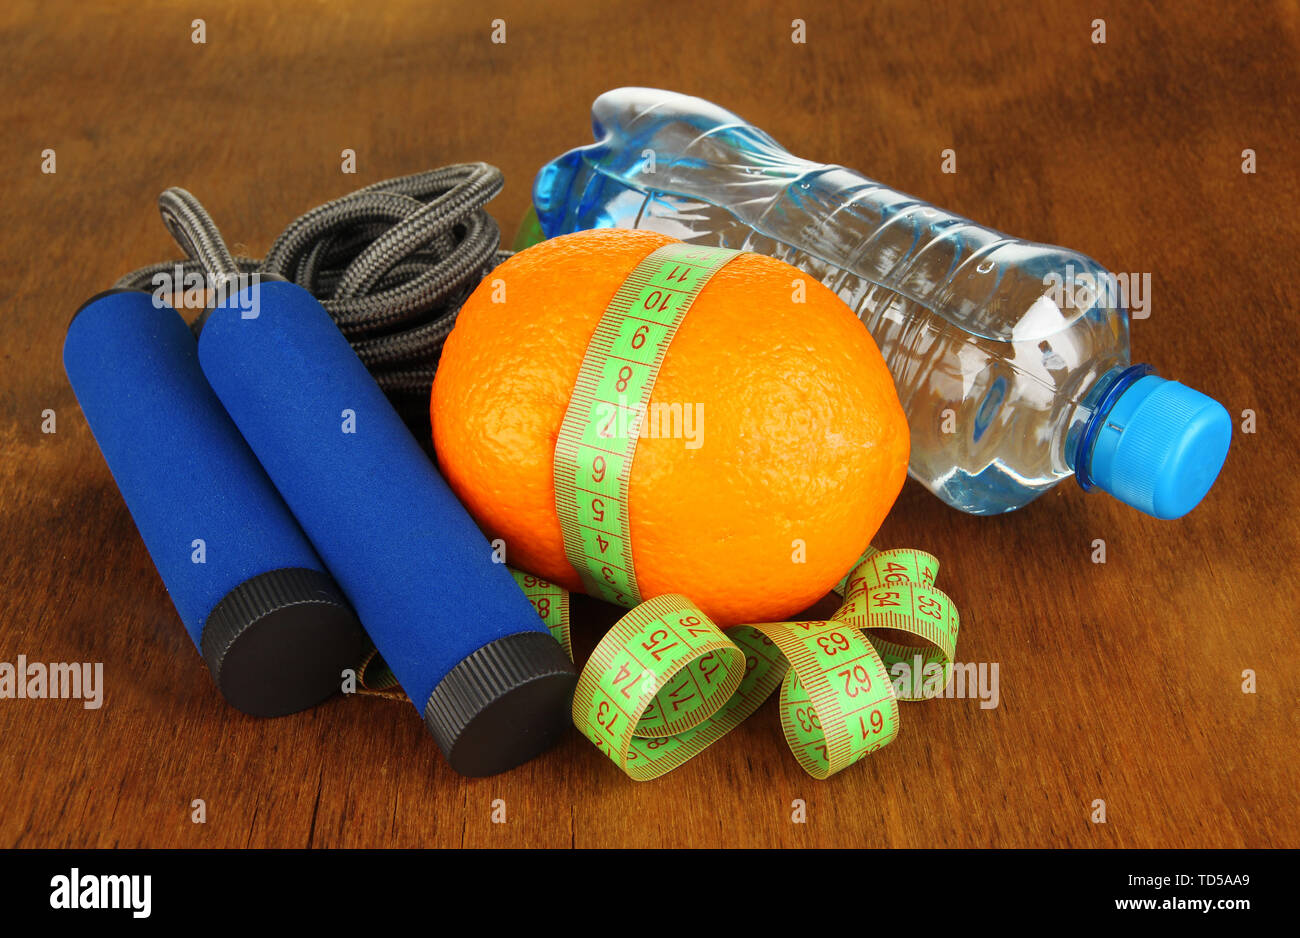 Orange with measuring tape,skipping rope and bottle of water, on wooden background - Stock Image